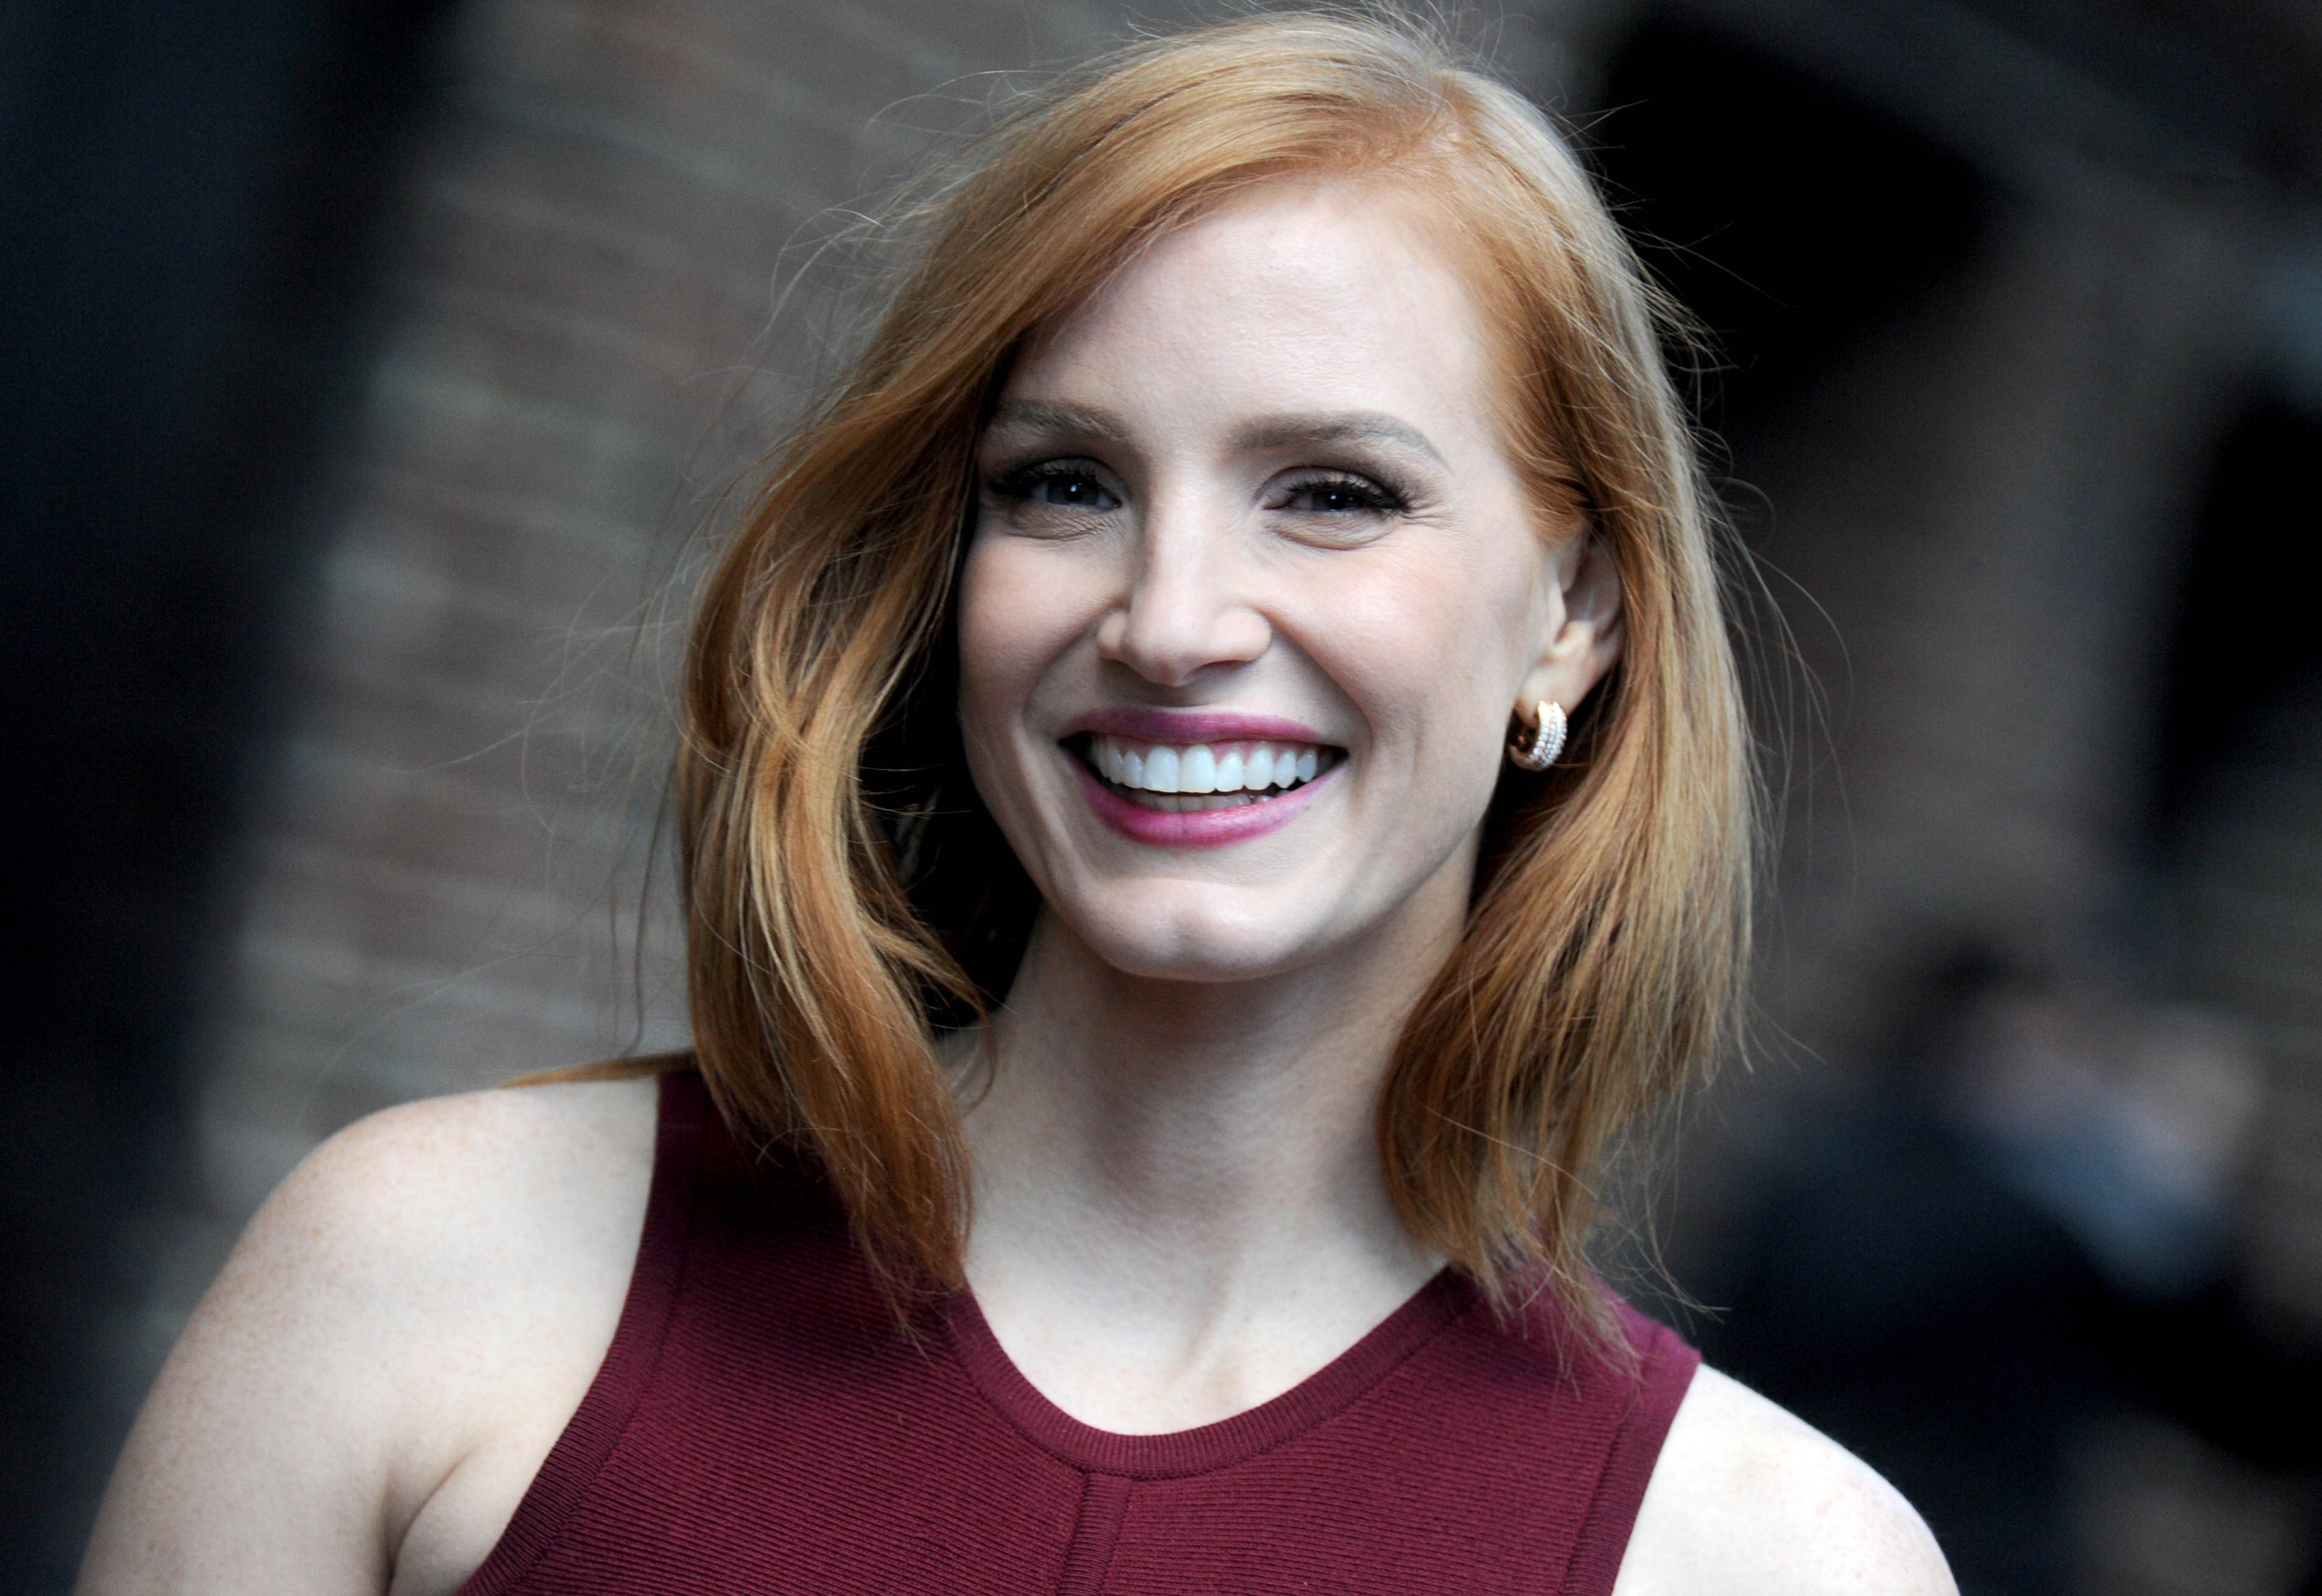 3814x2622 - Jessica Chastain Wallpapers 30